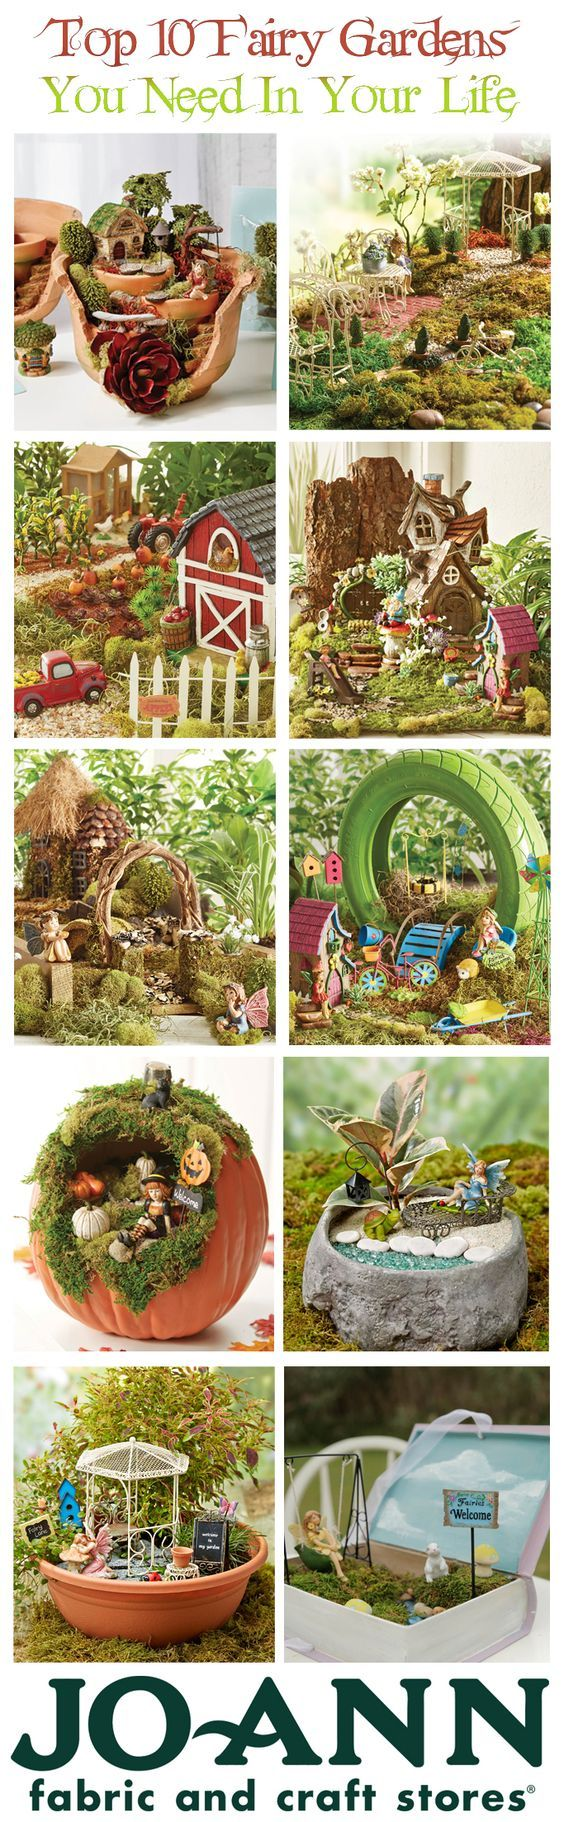 Top 10 Fairy Gardens That You Need This Spring Fairy Garden Tips And Tricks Pin Now Read